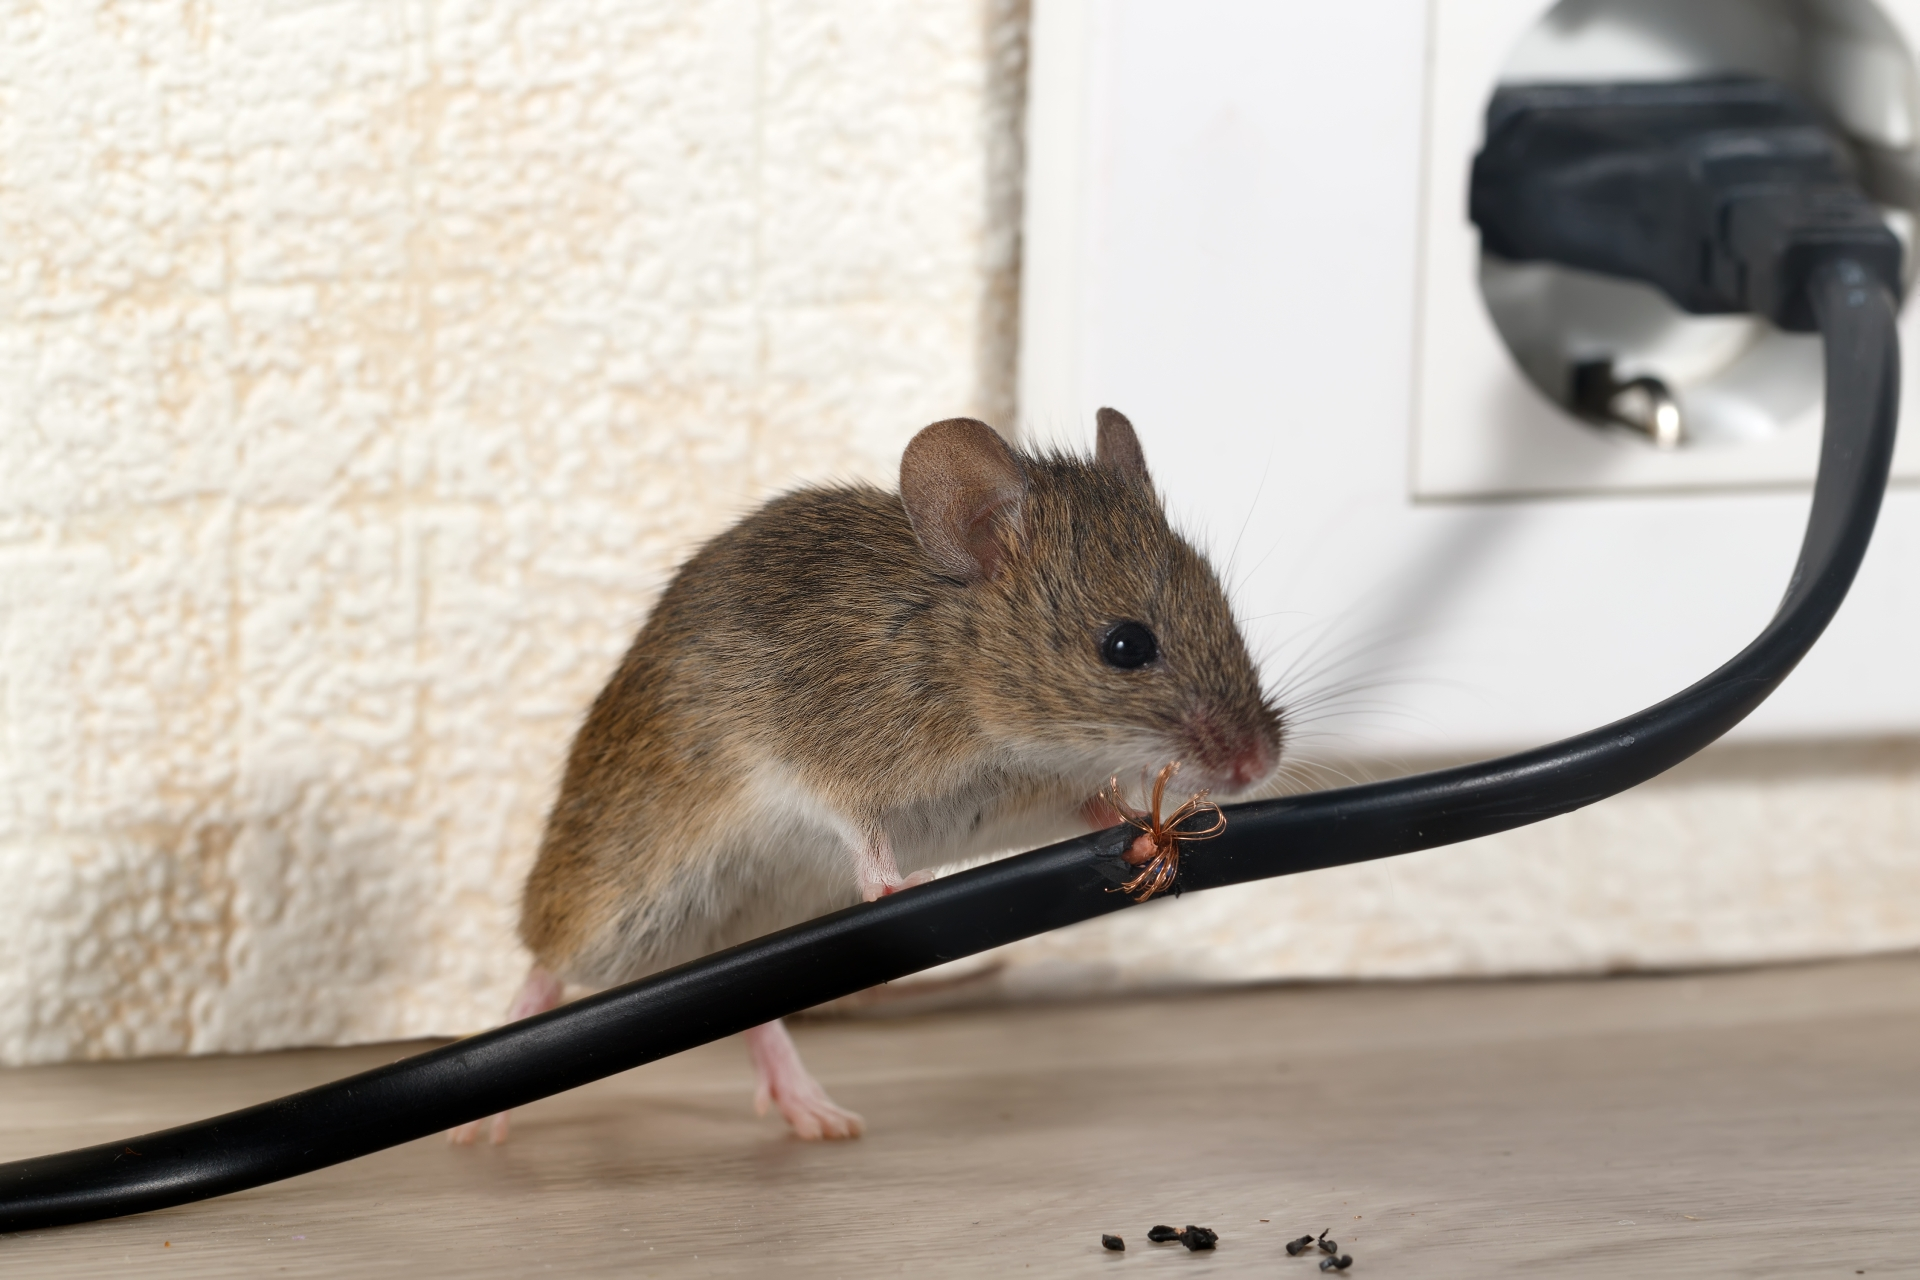 Mice Infestation, Pest Control in Yeading, UB4. Call Now 020 8166 9746